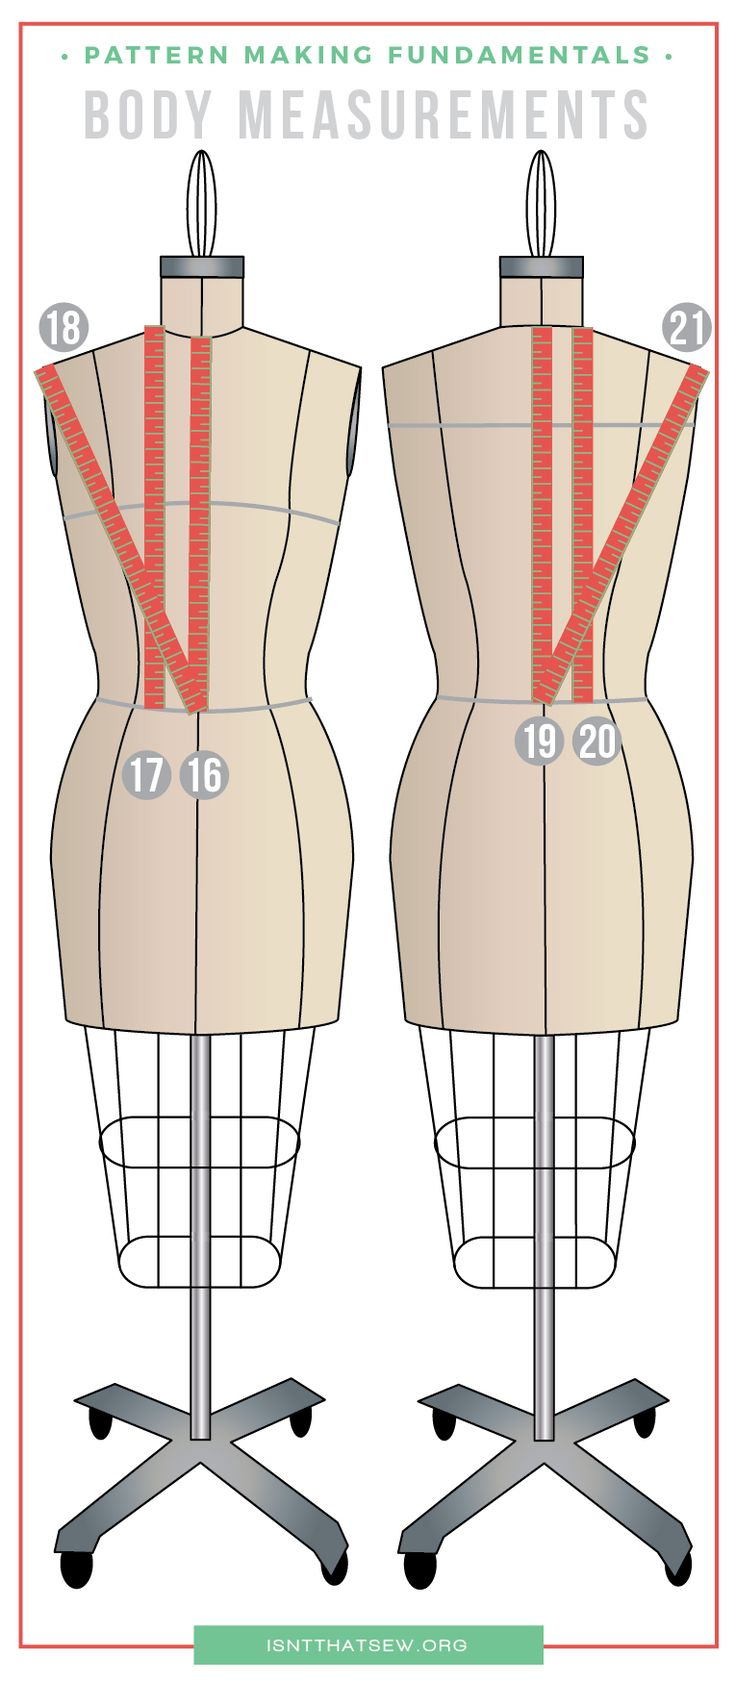 How to take body measurements for pattern drafting